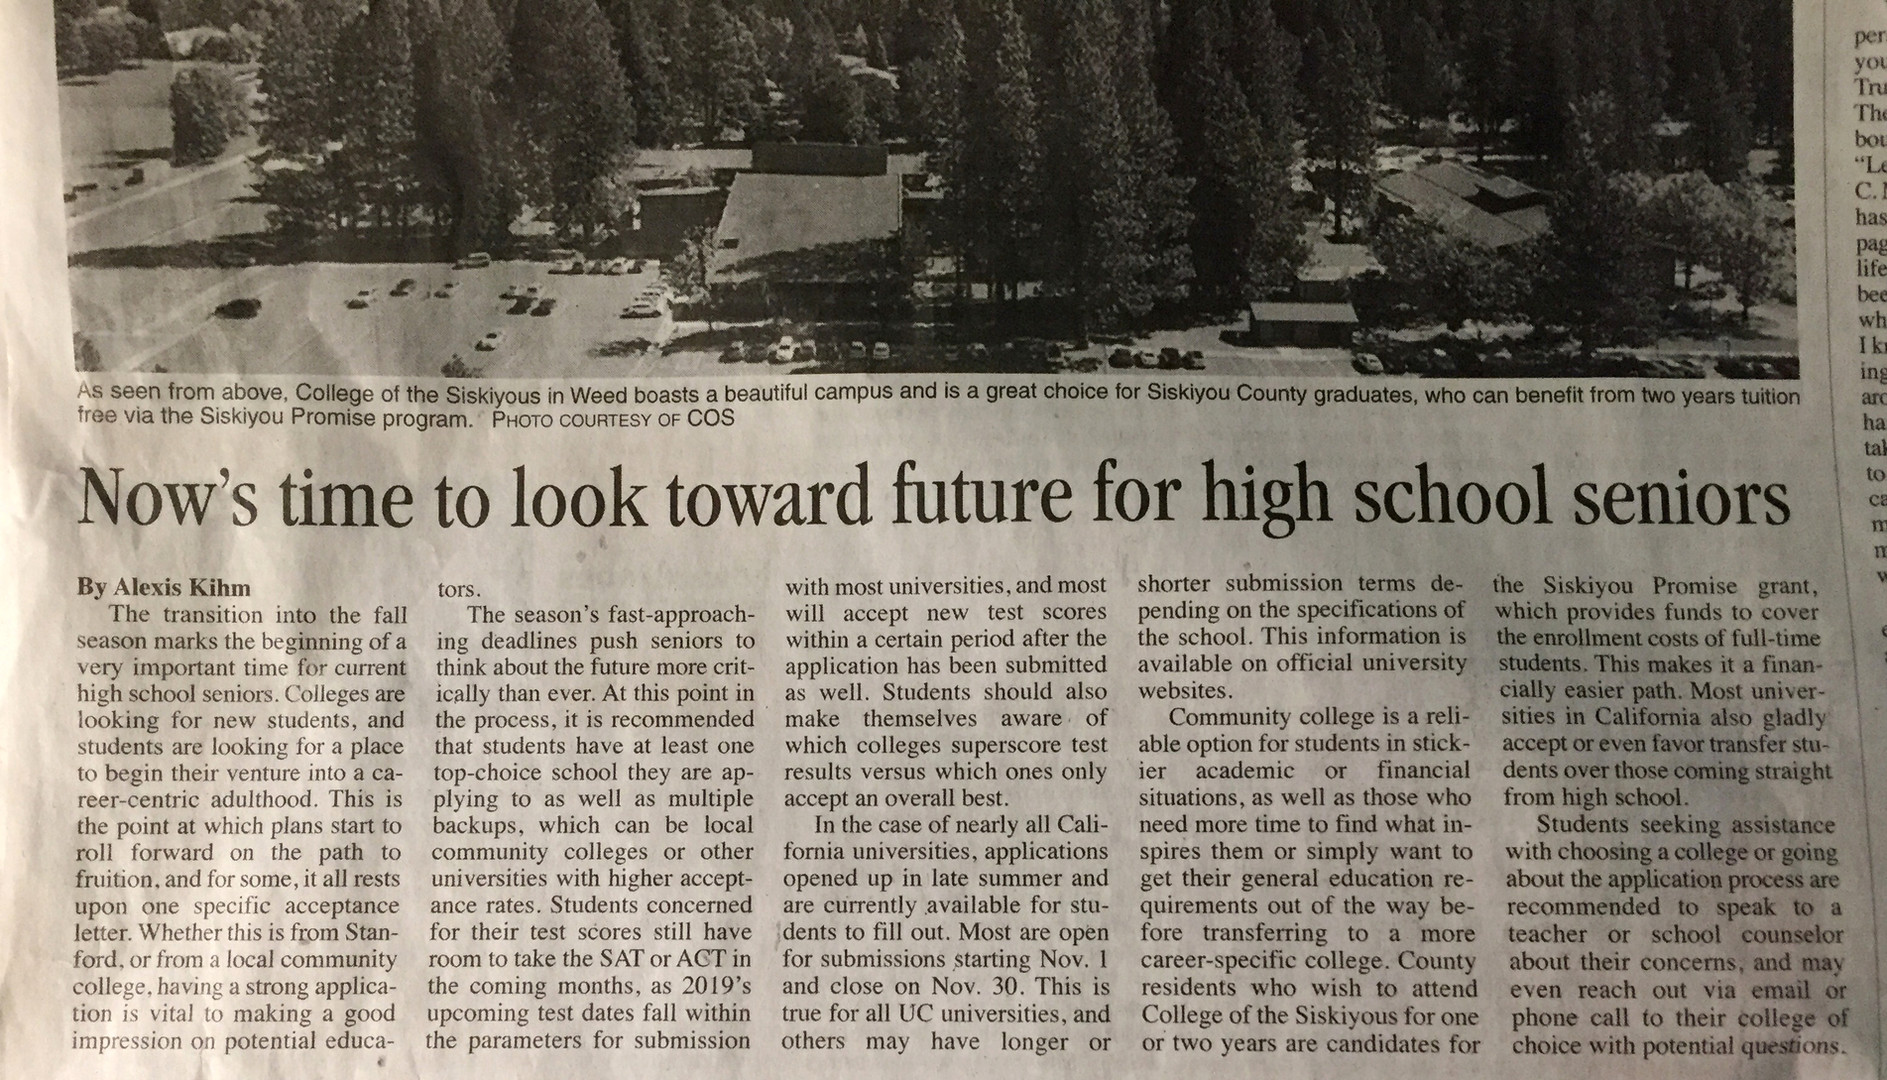 It's time to look towards future for high school seniors